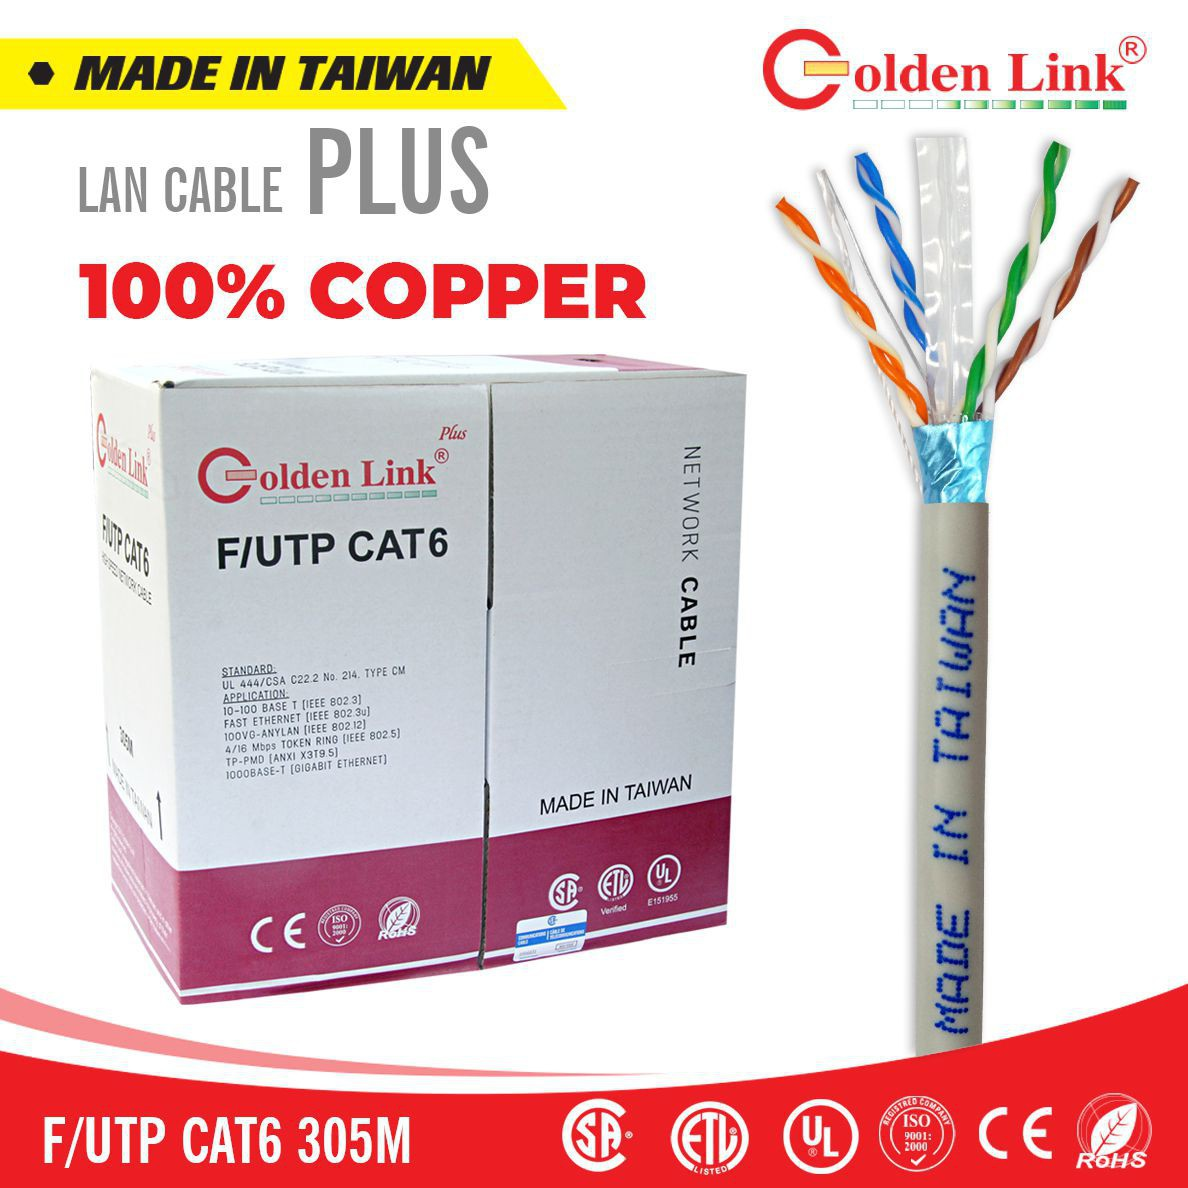 Cáp mạng Golden Link PLUS F/UTP CAT 6 MADE IN TAIWAN